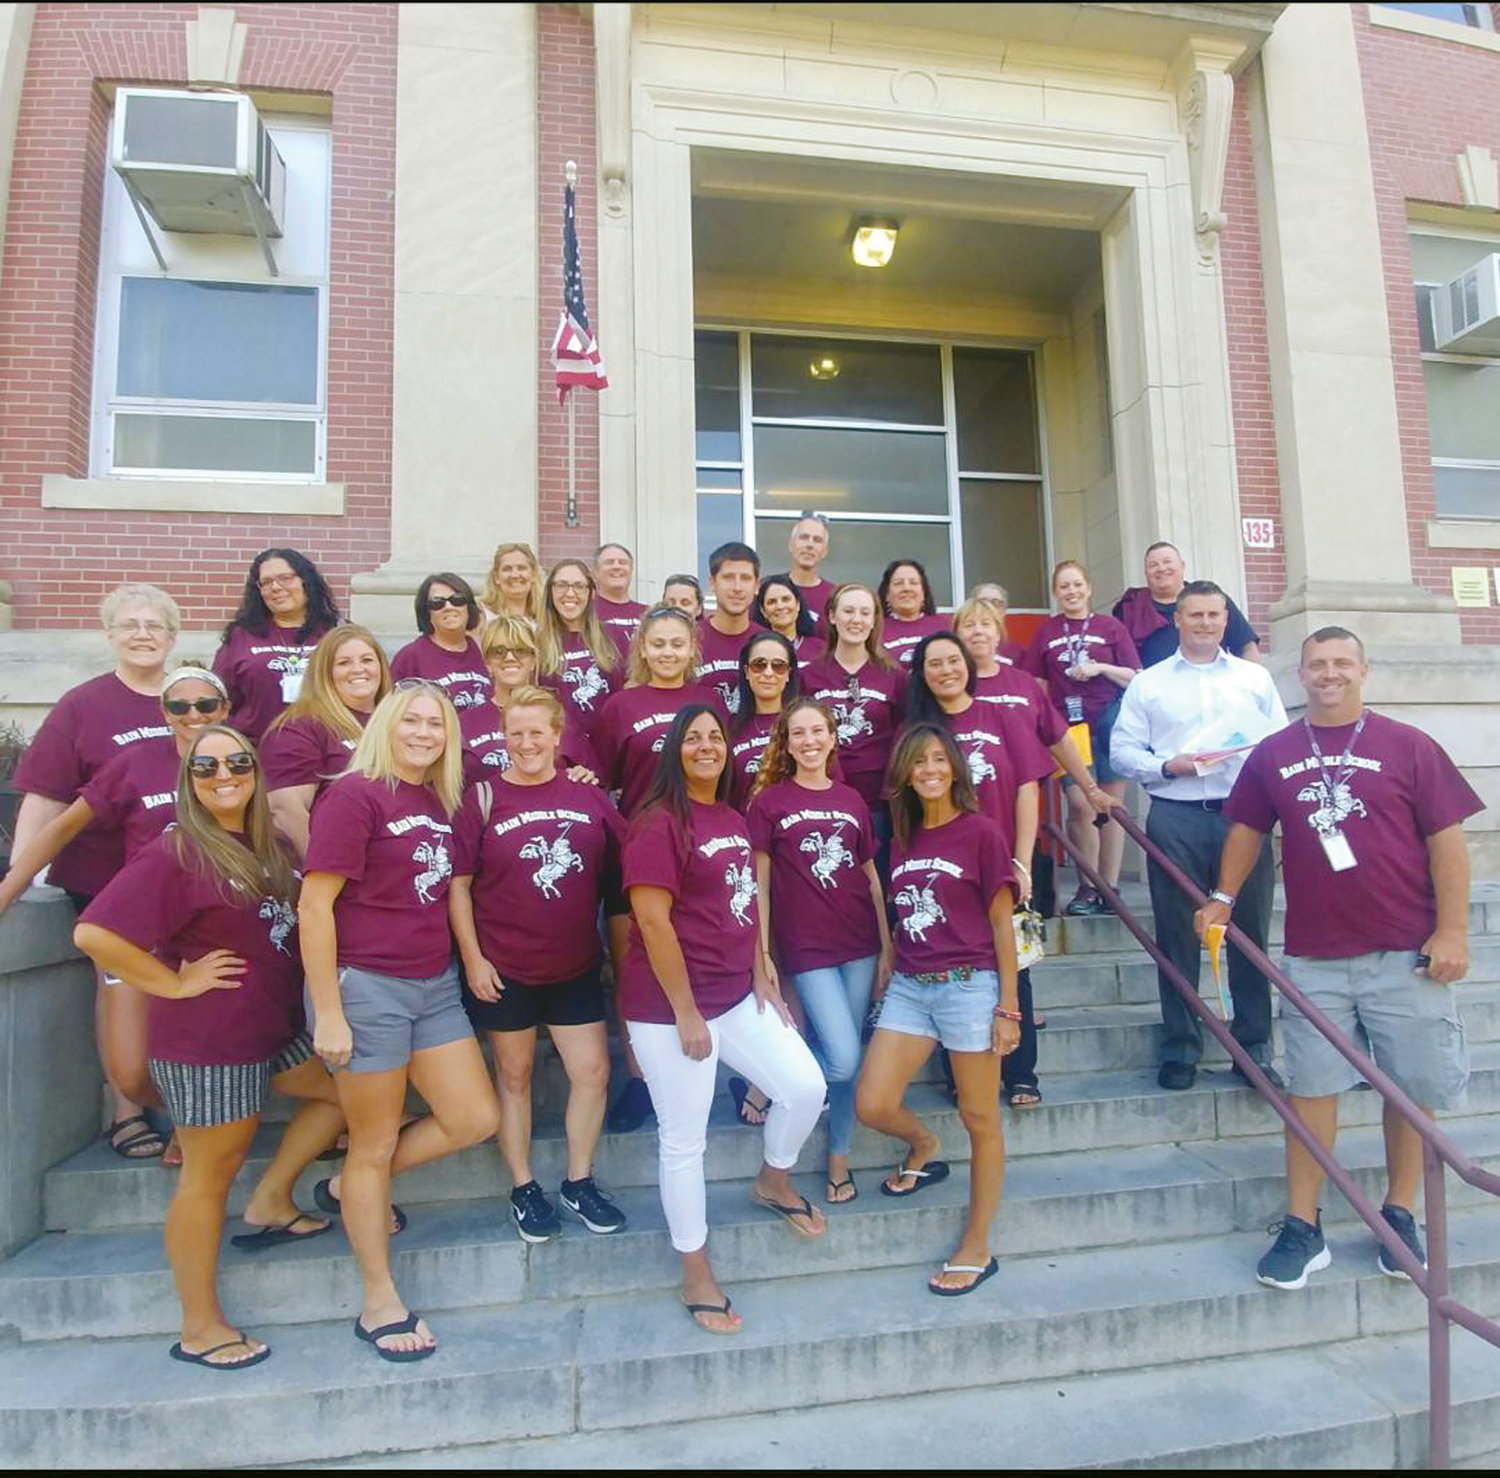 READY TO HIT THE STREETS: Staff members from Hugh B. Bain Middle School, Arlington and Stadium elementary schools, and the Cranston Family Center gathered together for a group photo before heading out last Thursday evening.